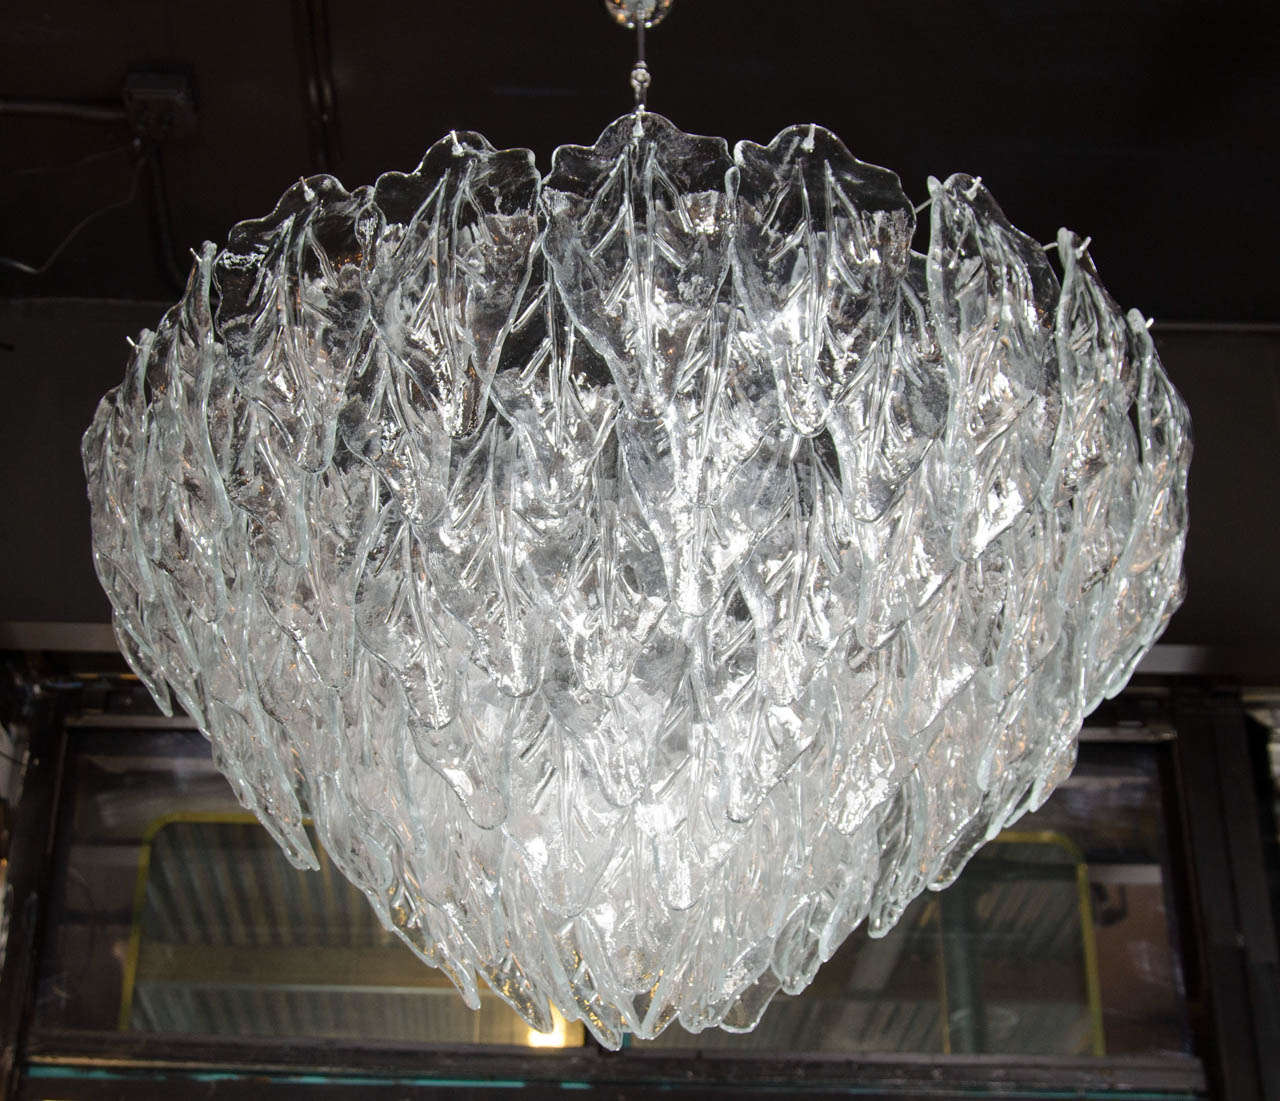 Opulent murano hand blown glass leaf chandelier at 1stdibs opulent murano glass chandelier featuring numerous tiers of hand blown murano glass leaves that individually hang aloadofball Choice Image